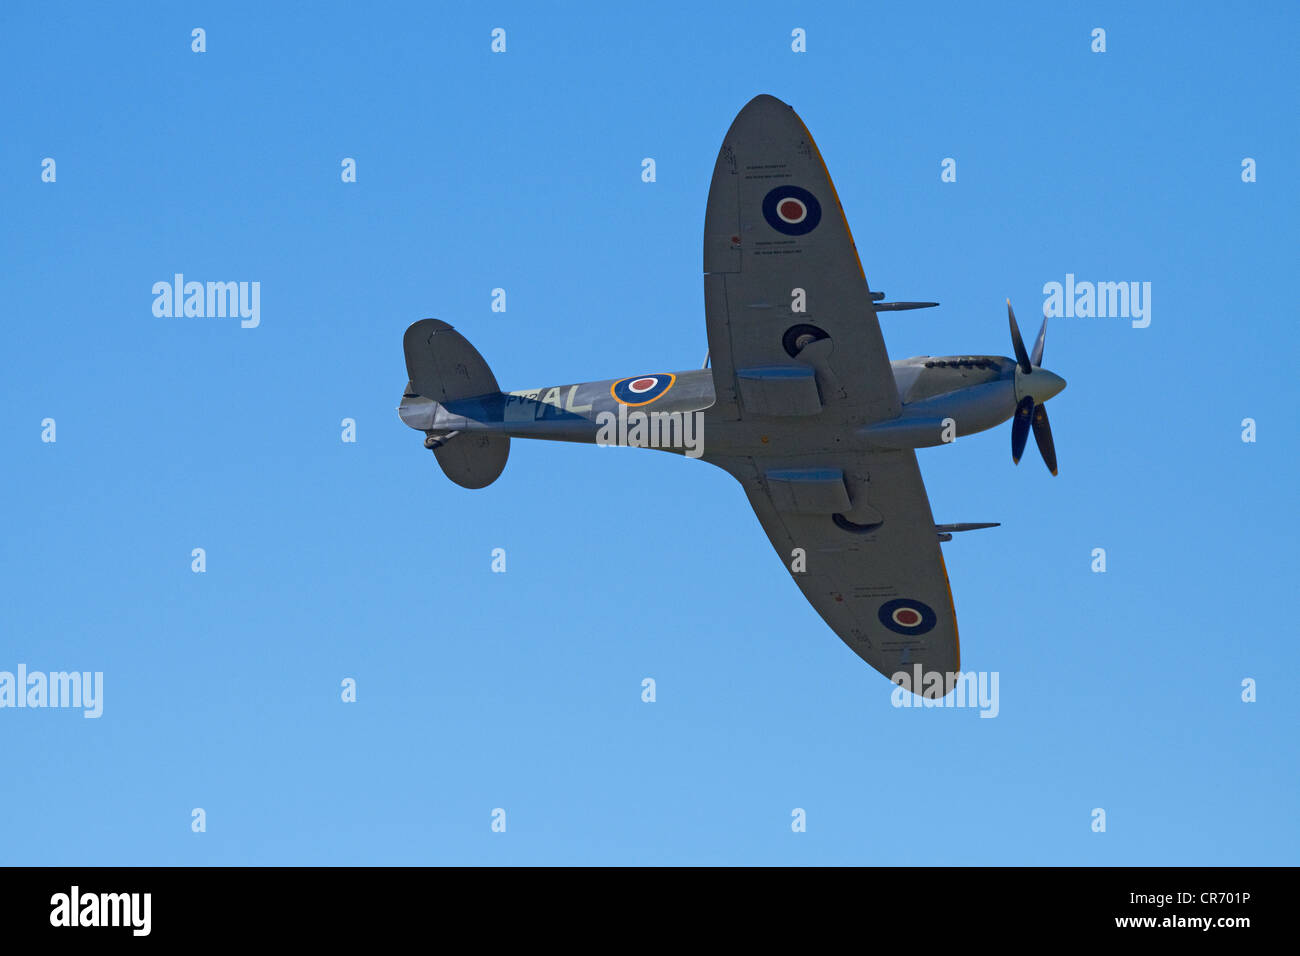 Supermarine Spitfire - British and allied WWII Fighter Plane - Stock Image